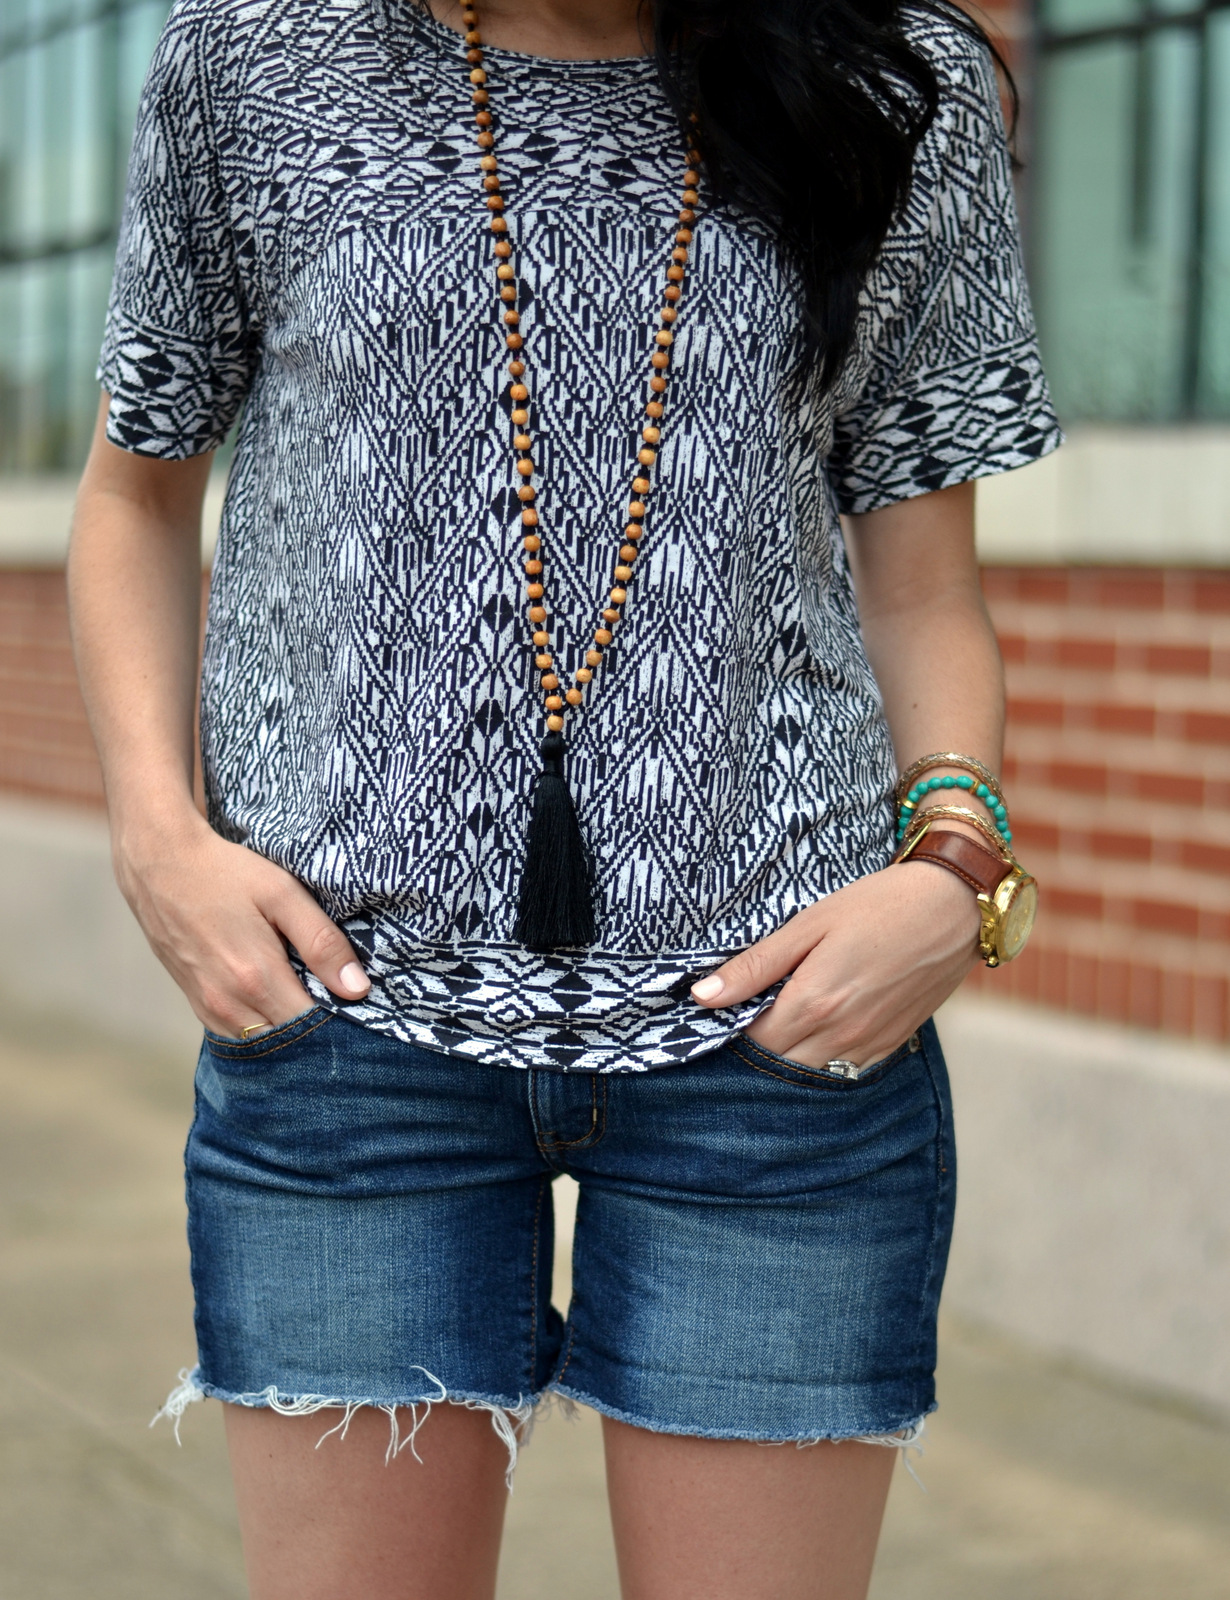 Patterned aztec tee and tassel necklace